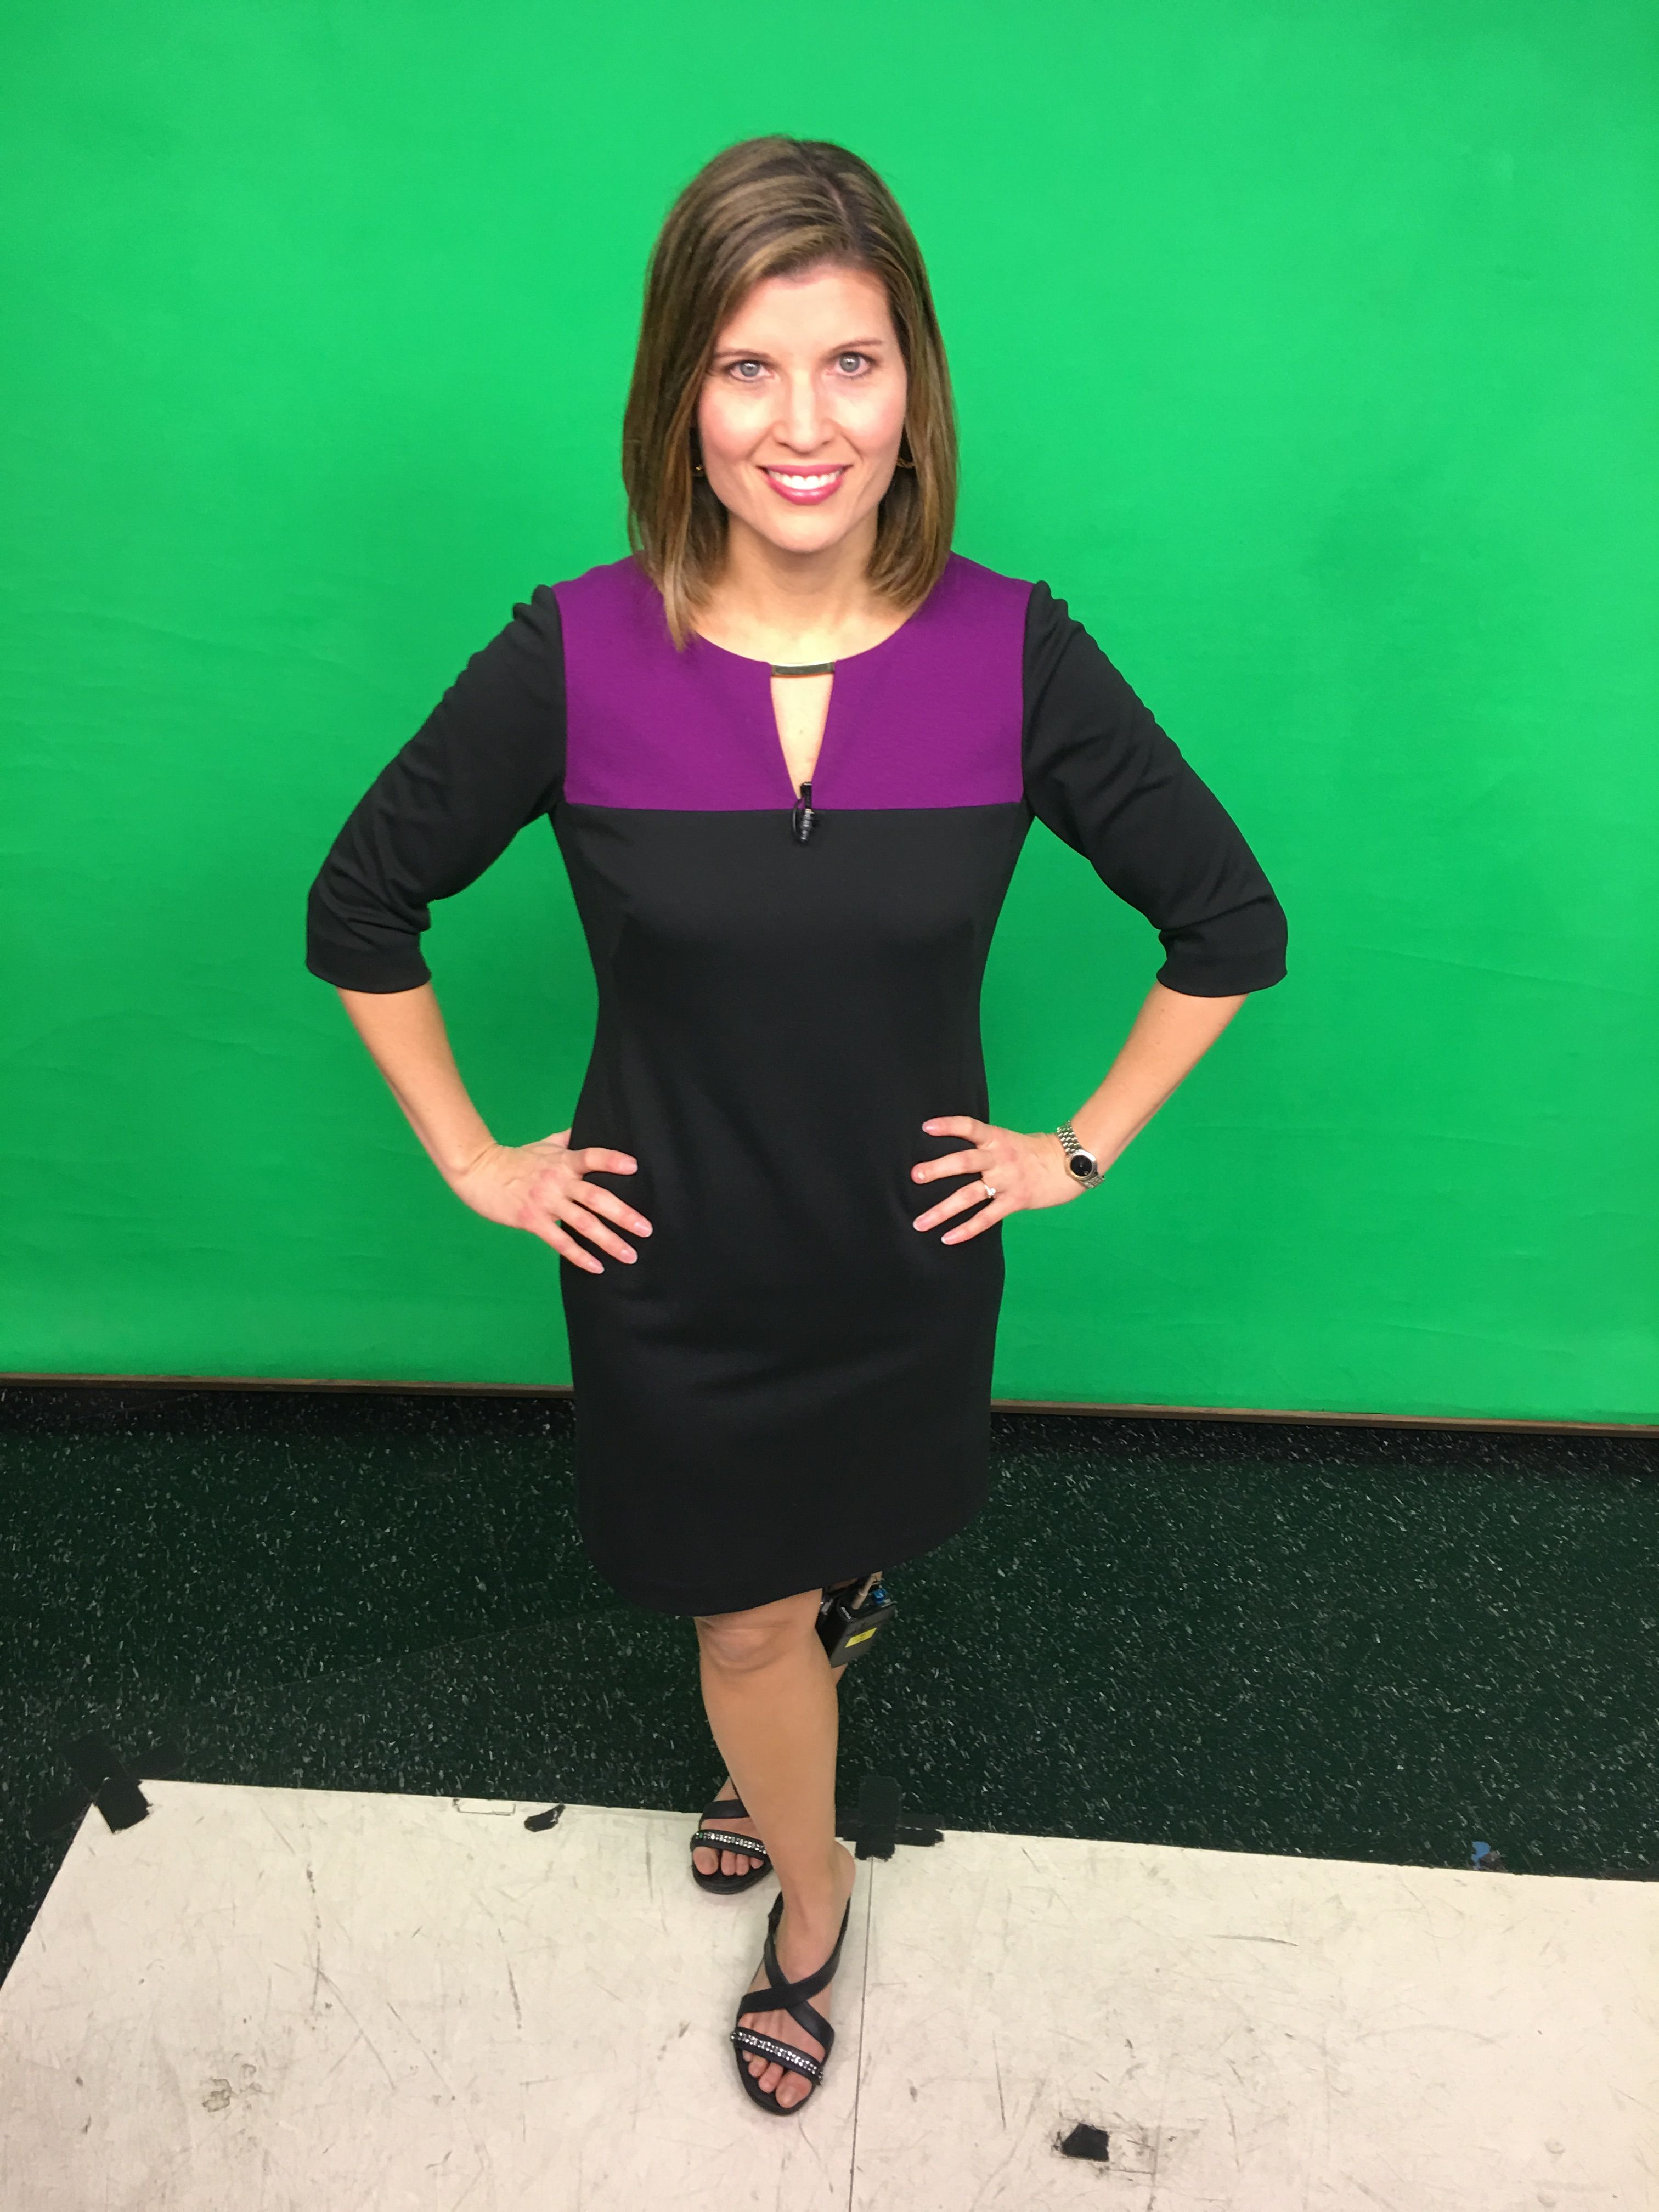 Ok ... after a long hiatus, #OOTD (outfit of the day) in #ChiksCloset is back! I love bargain shopping and found this dress at TJ Maxx last year. It's Tahari - one of my go-to favorite brands. #Jan23 #2017